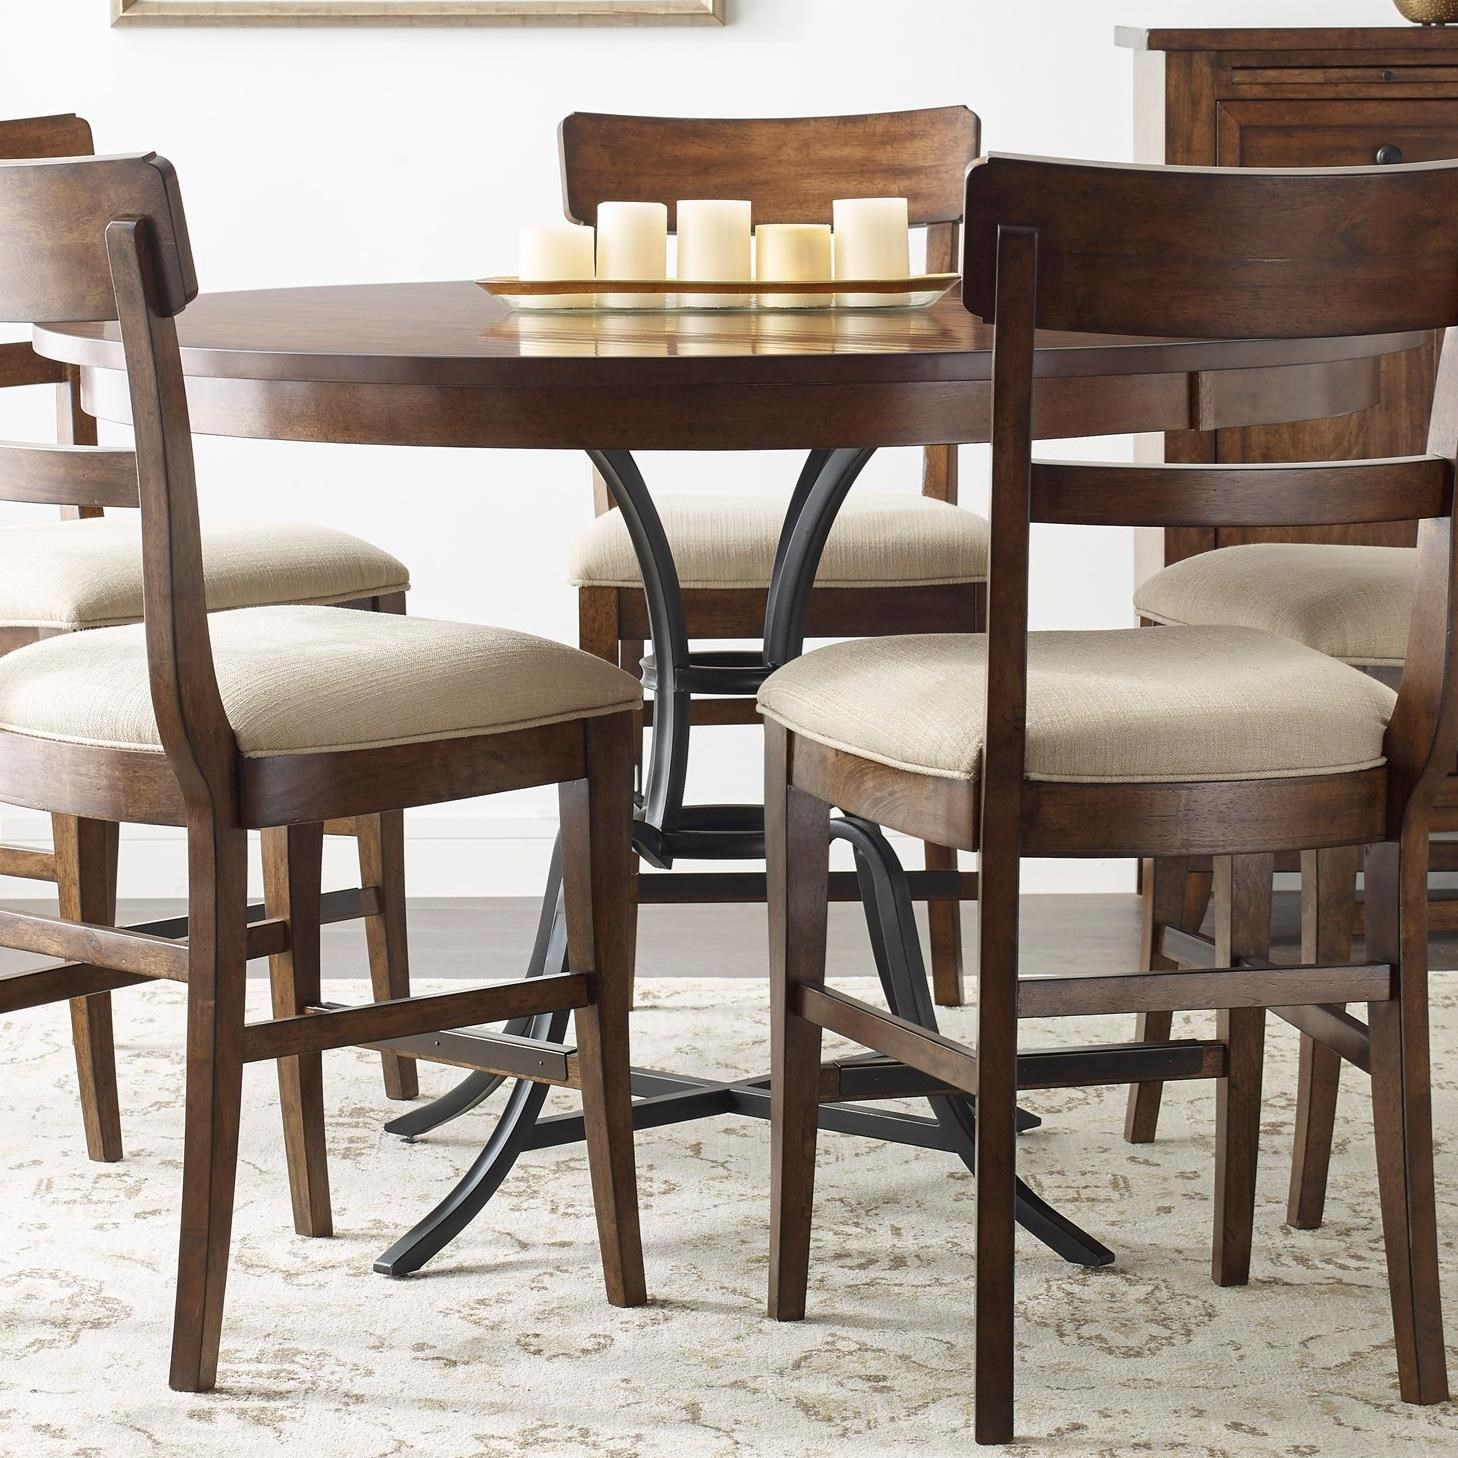 "The Nook 54"" Round Counter Height Table w/ Metal Base at Stoney Creek Furniture"